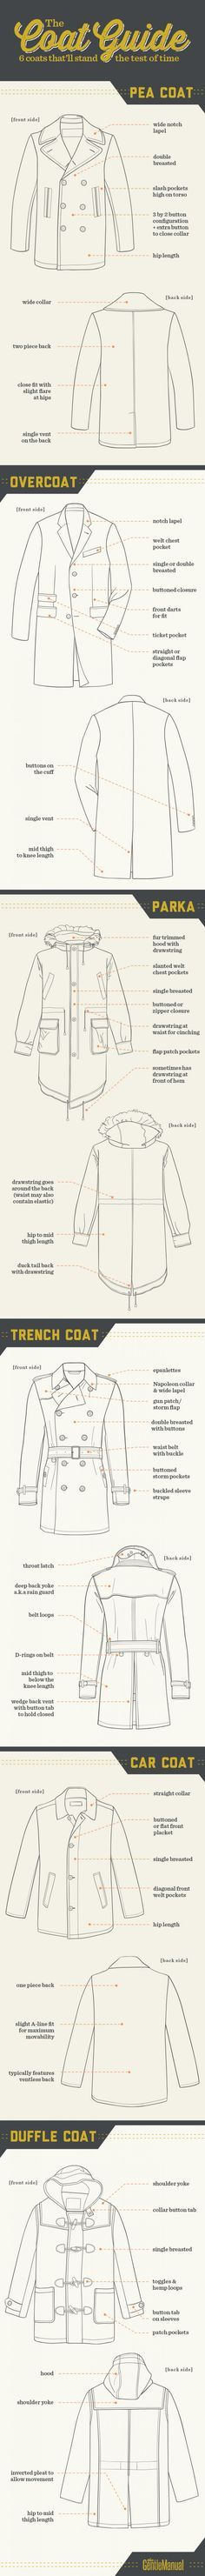 ღღ The Coat Guide